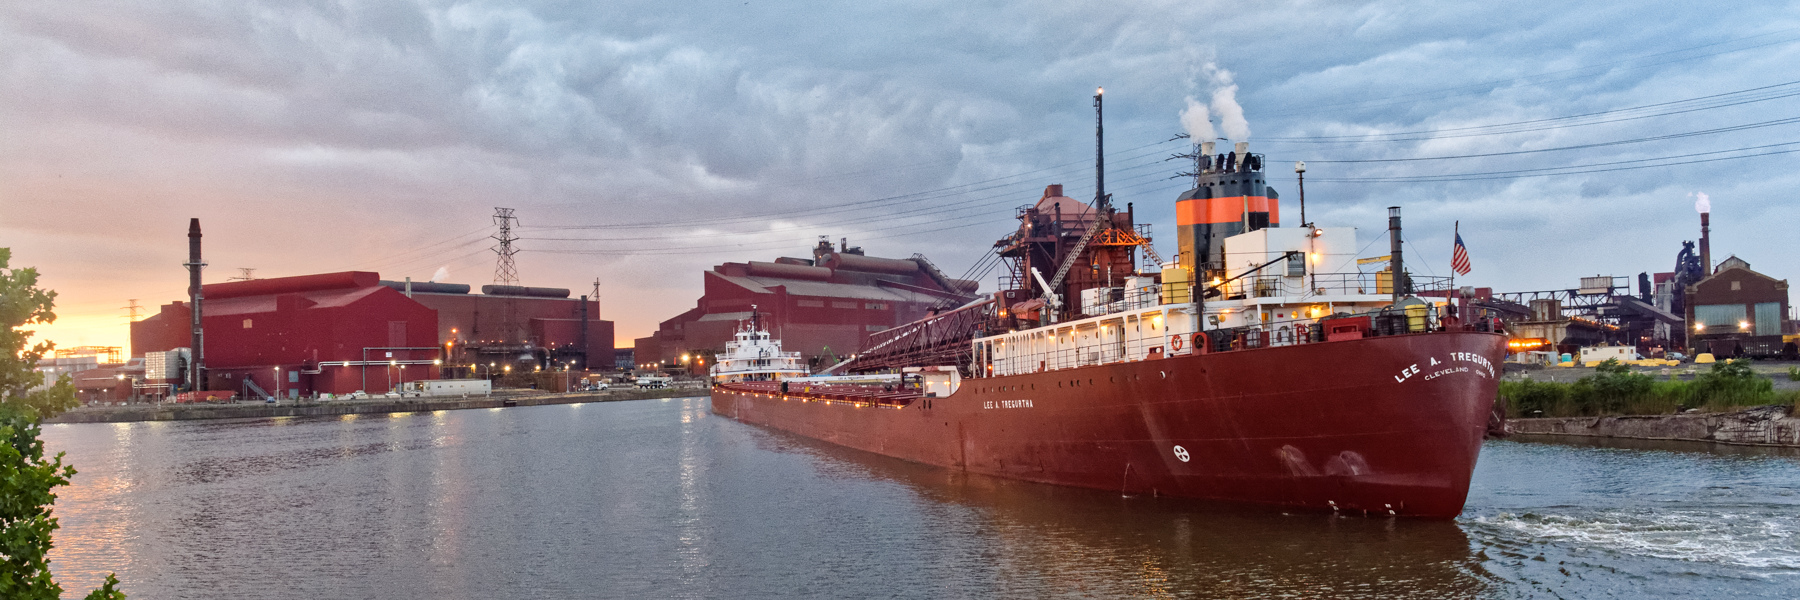 Detroit River Evening Arrival - Lee A. Tregurtha in Rouge Turning Basin with a load for AK Steel.